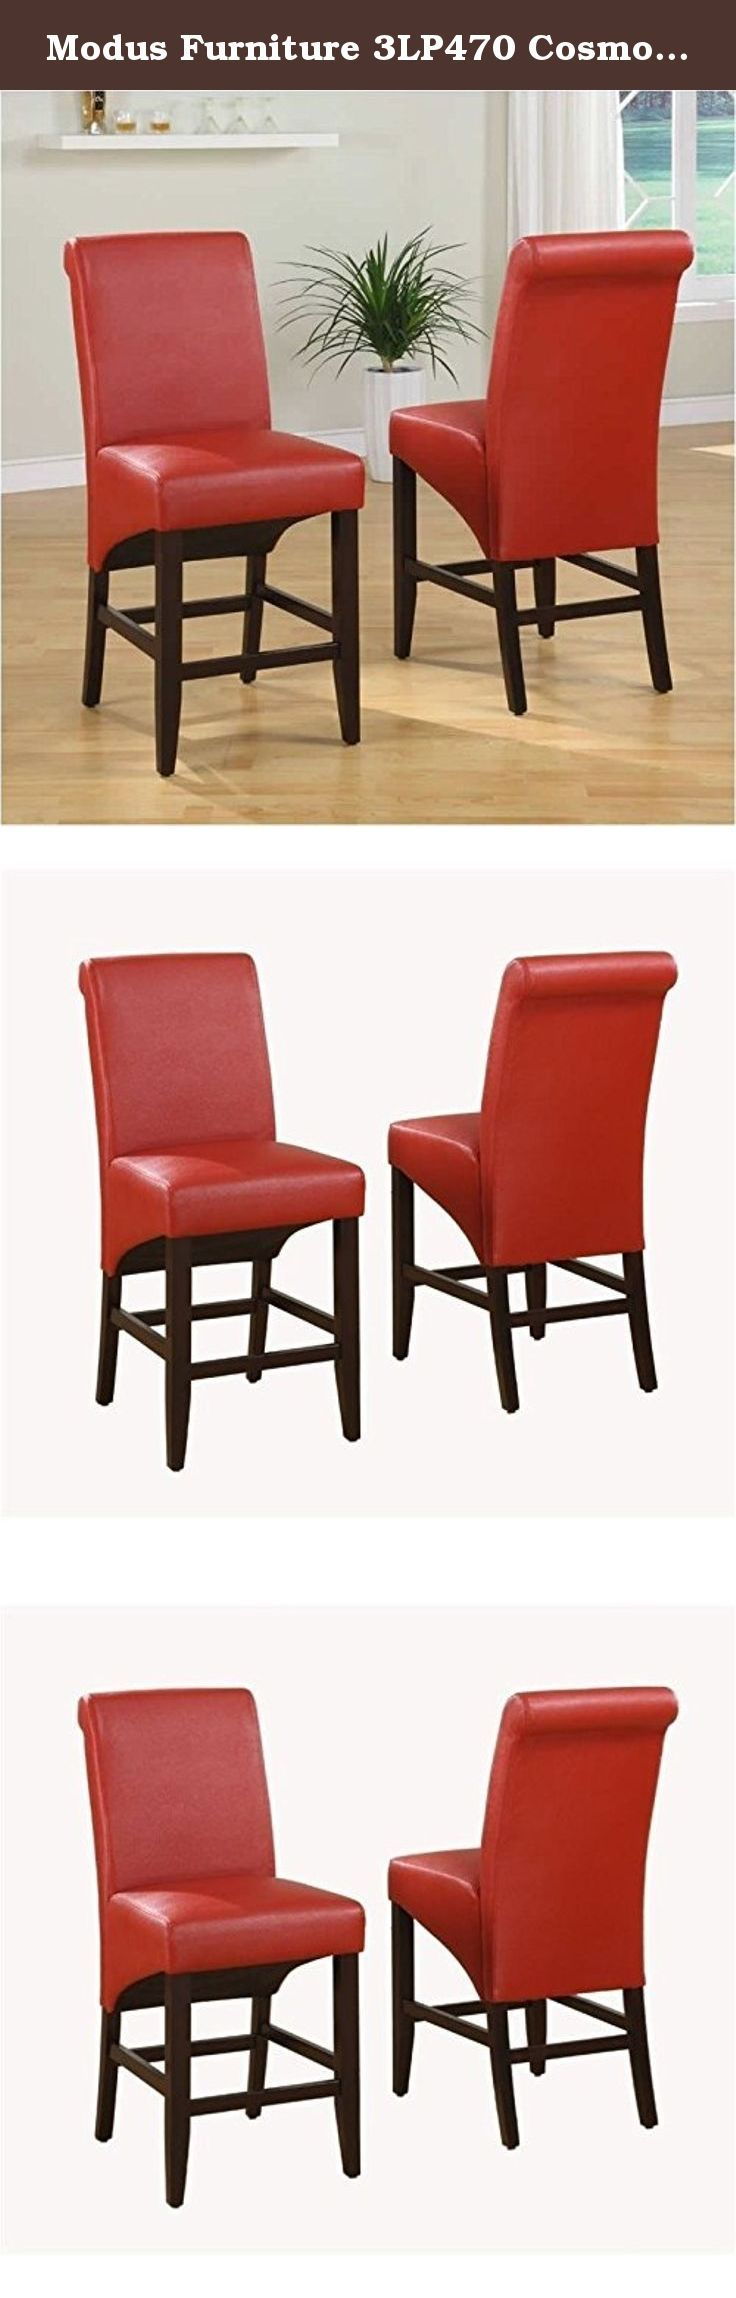 Modus Furniture 3LP470 Cosmo Sleigh Back Stools, Ruby (Set of Two). The Cosmo Sleigh Back Stool in Ruby (Set of 2) features a unique contemporary design. Constructed with no-sag seat cushions for extra comfort. 10 bolt grooved corner block construction for easy assembly and long term durability. Chair legs are constructed from solid poplar. Upholstery fabric is a supple pebble grain synthetic leather. Features 4 stretchers for maximum rigidity. In an industry dominated by varying shades…